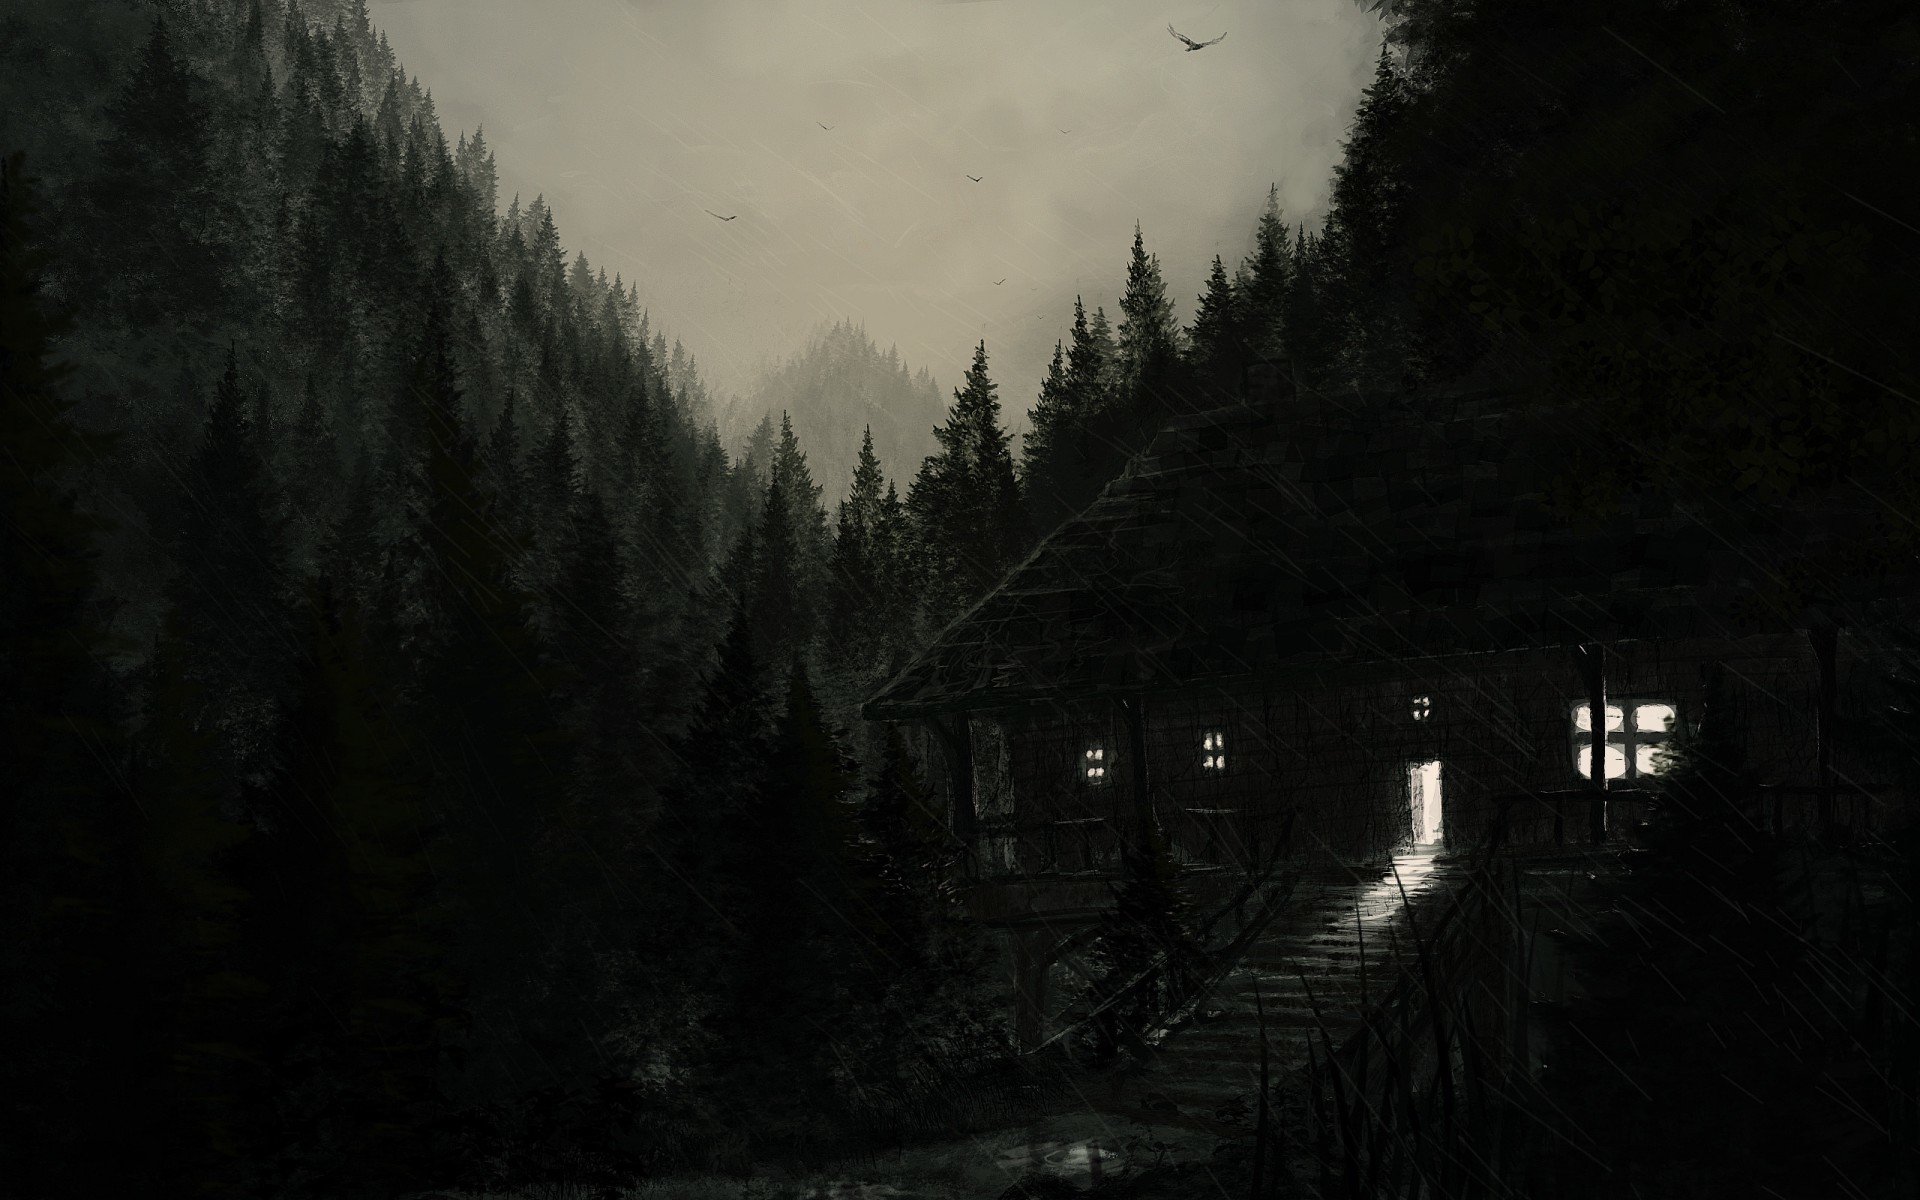 Dark spooky creepy cabin houses architecture buildings trees forest  landscapes night lights artistic haunted halloween seasonal wallpaper |  …